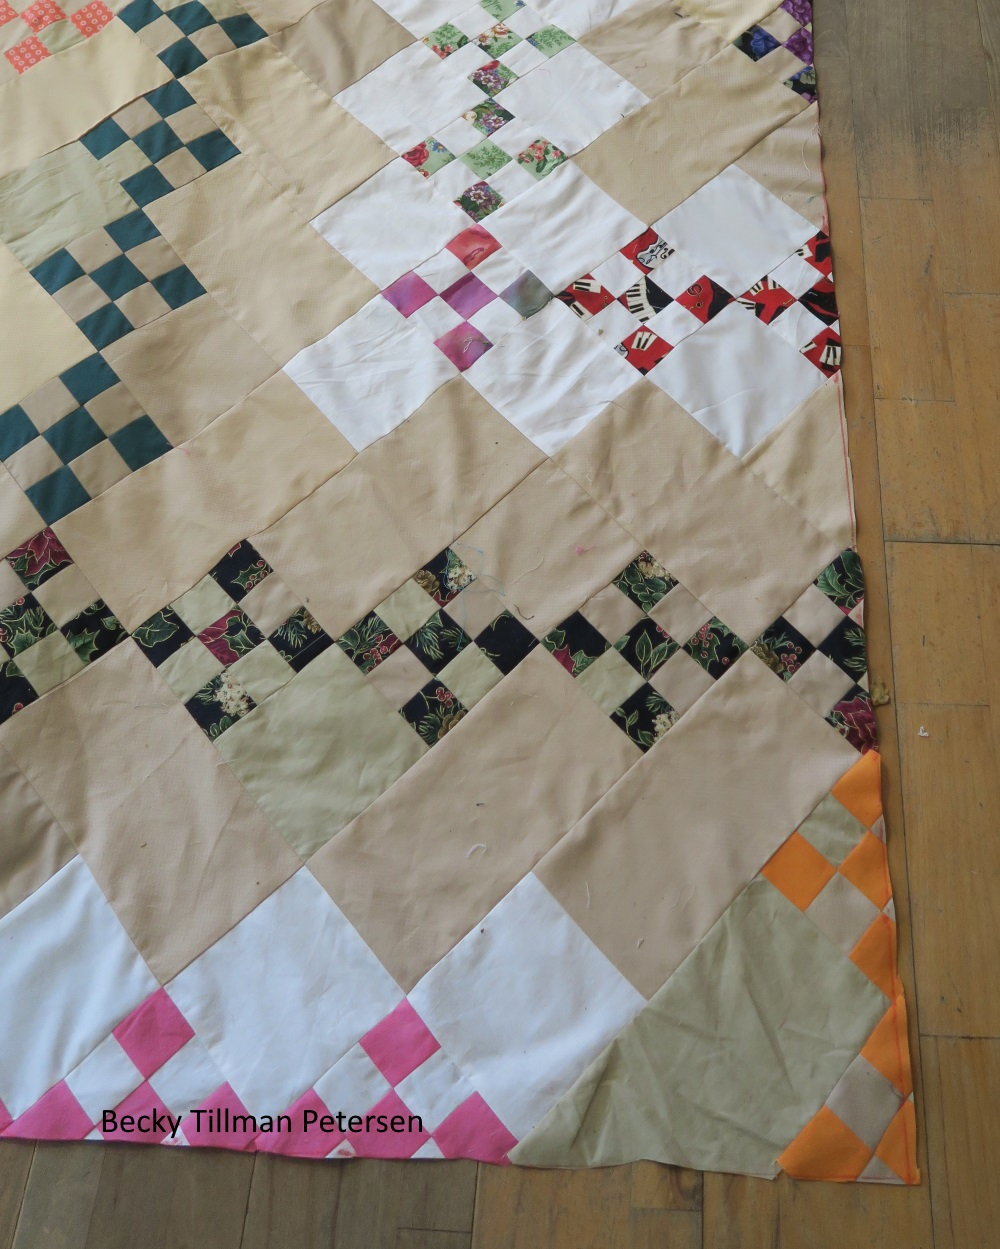 close up view of quilt: reveals that quilt is made up of small block composing the 2 inch squares. 5 small squares make are inside one of the zig zag patterns. One miniture block at each corner of the 2 inch fabric square, and one in the center (giving a checkered look).